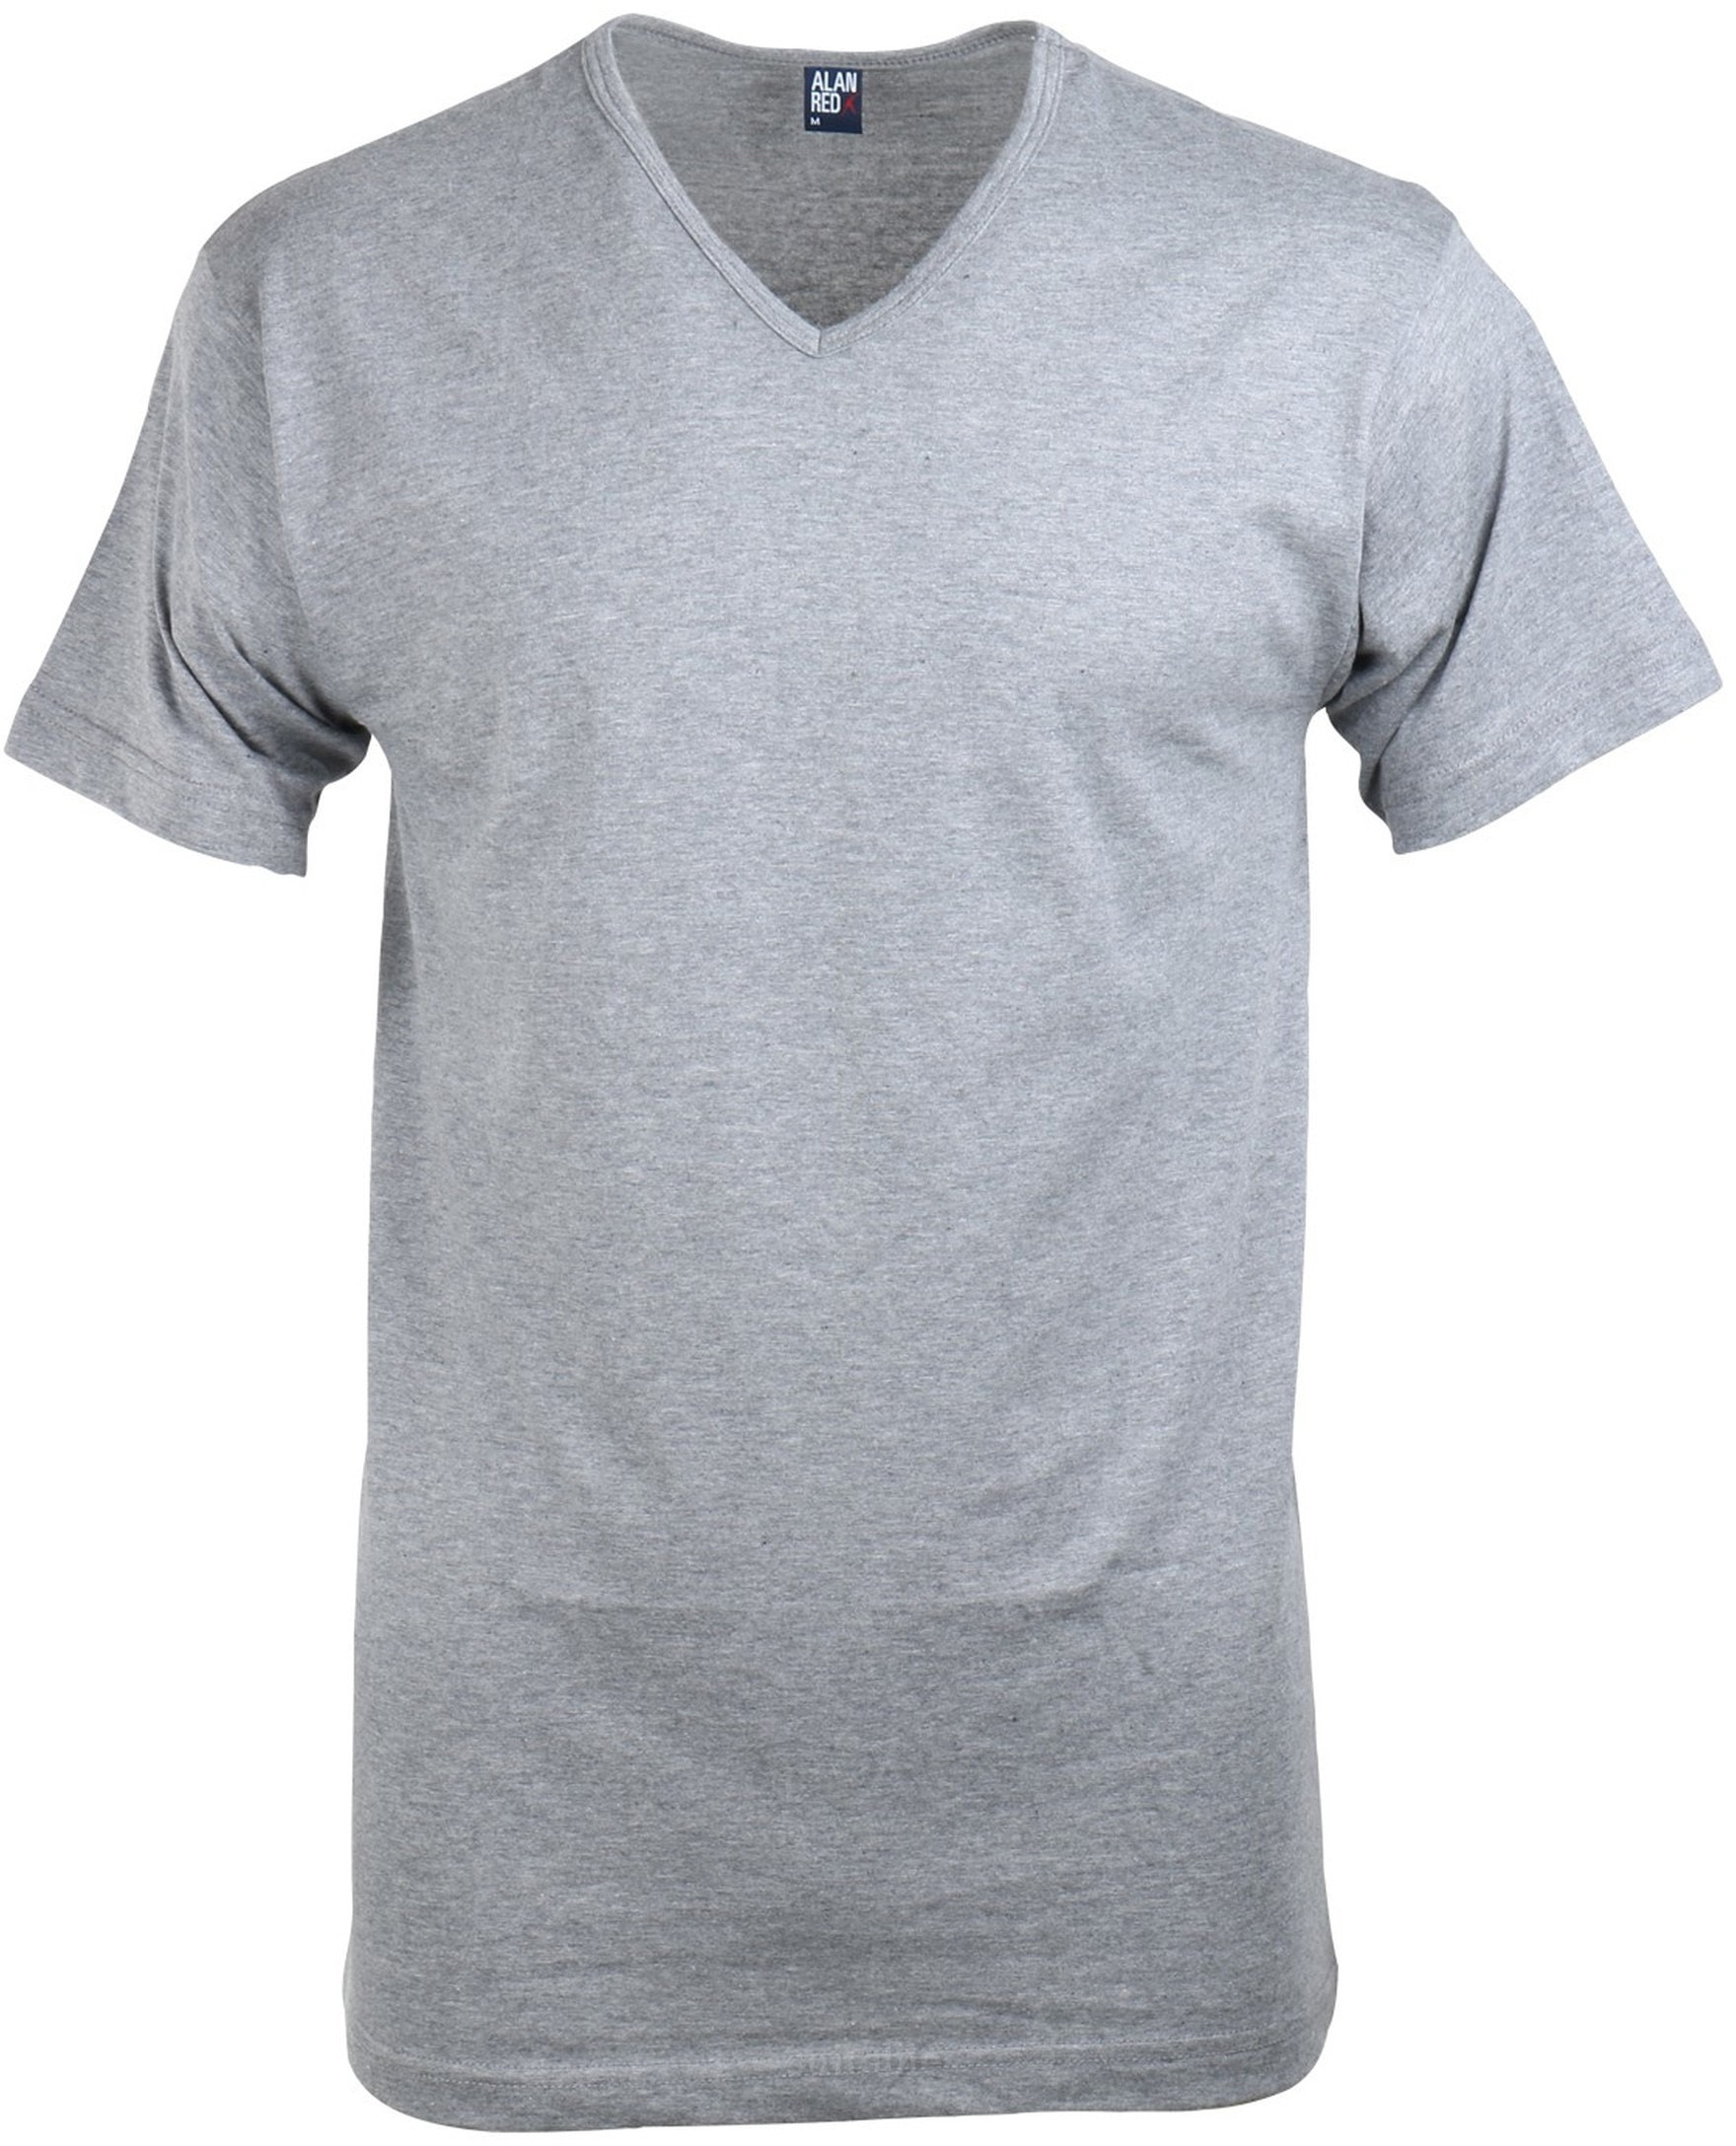 Alan Red Vermont T-shirt V-Neck Mouse 1-Pack foto 0